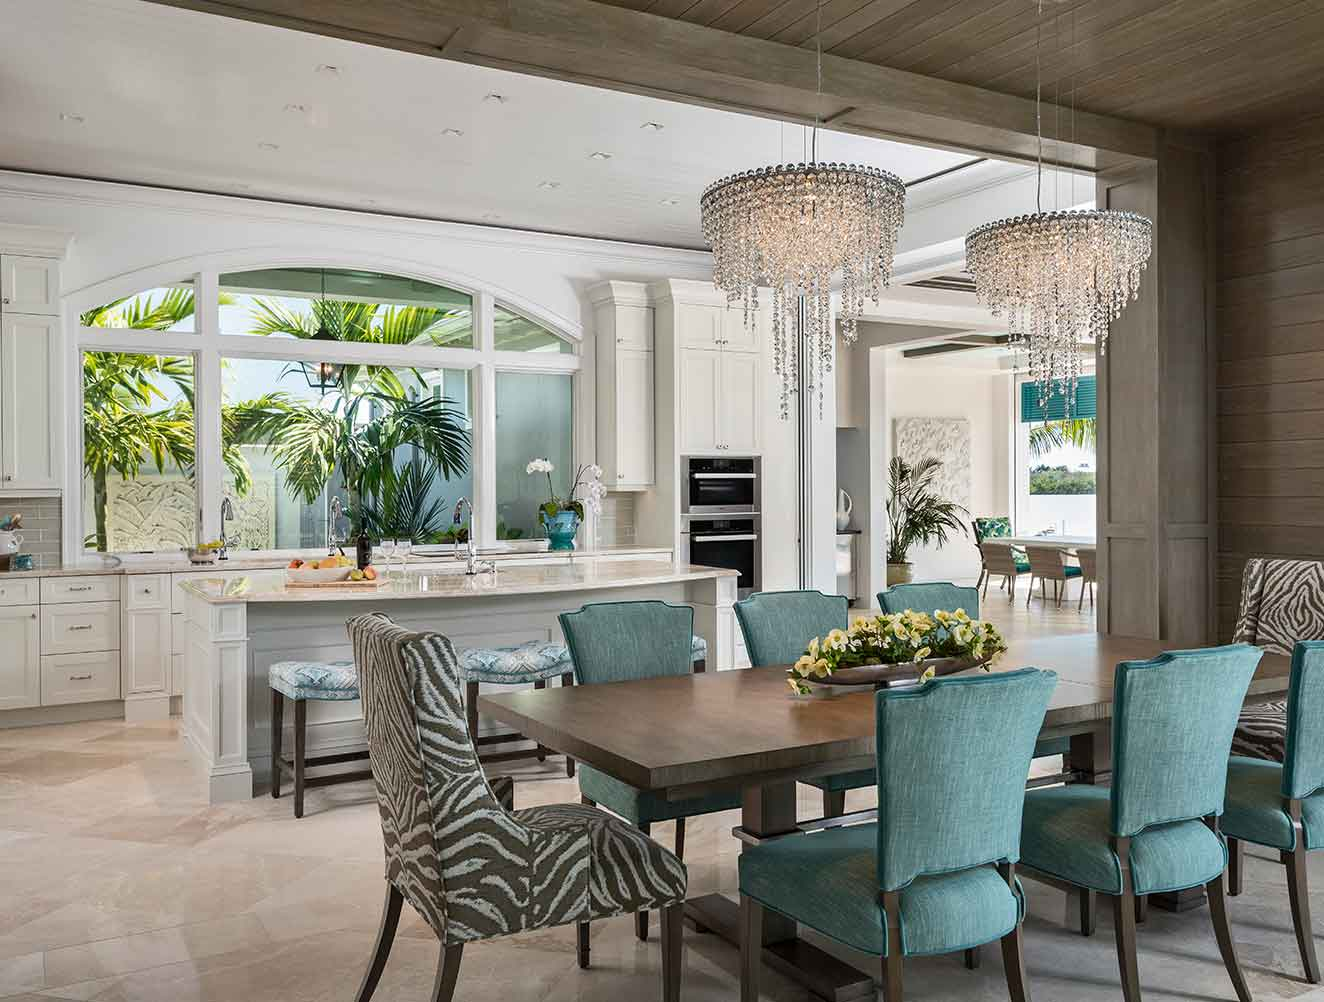 Kitchen & Dining Rooms at Caxambas Residence in Naples Florida, single family home designed by Kukk Architecture & Design Naples Architecture Firm